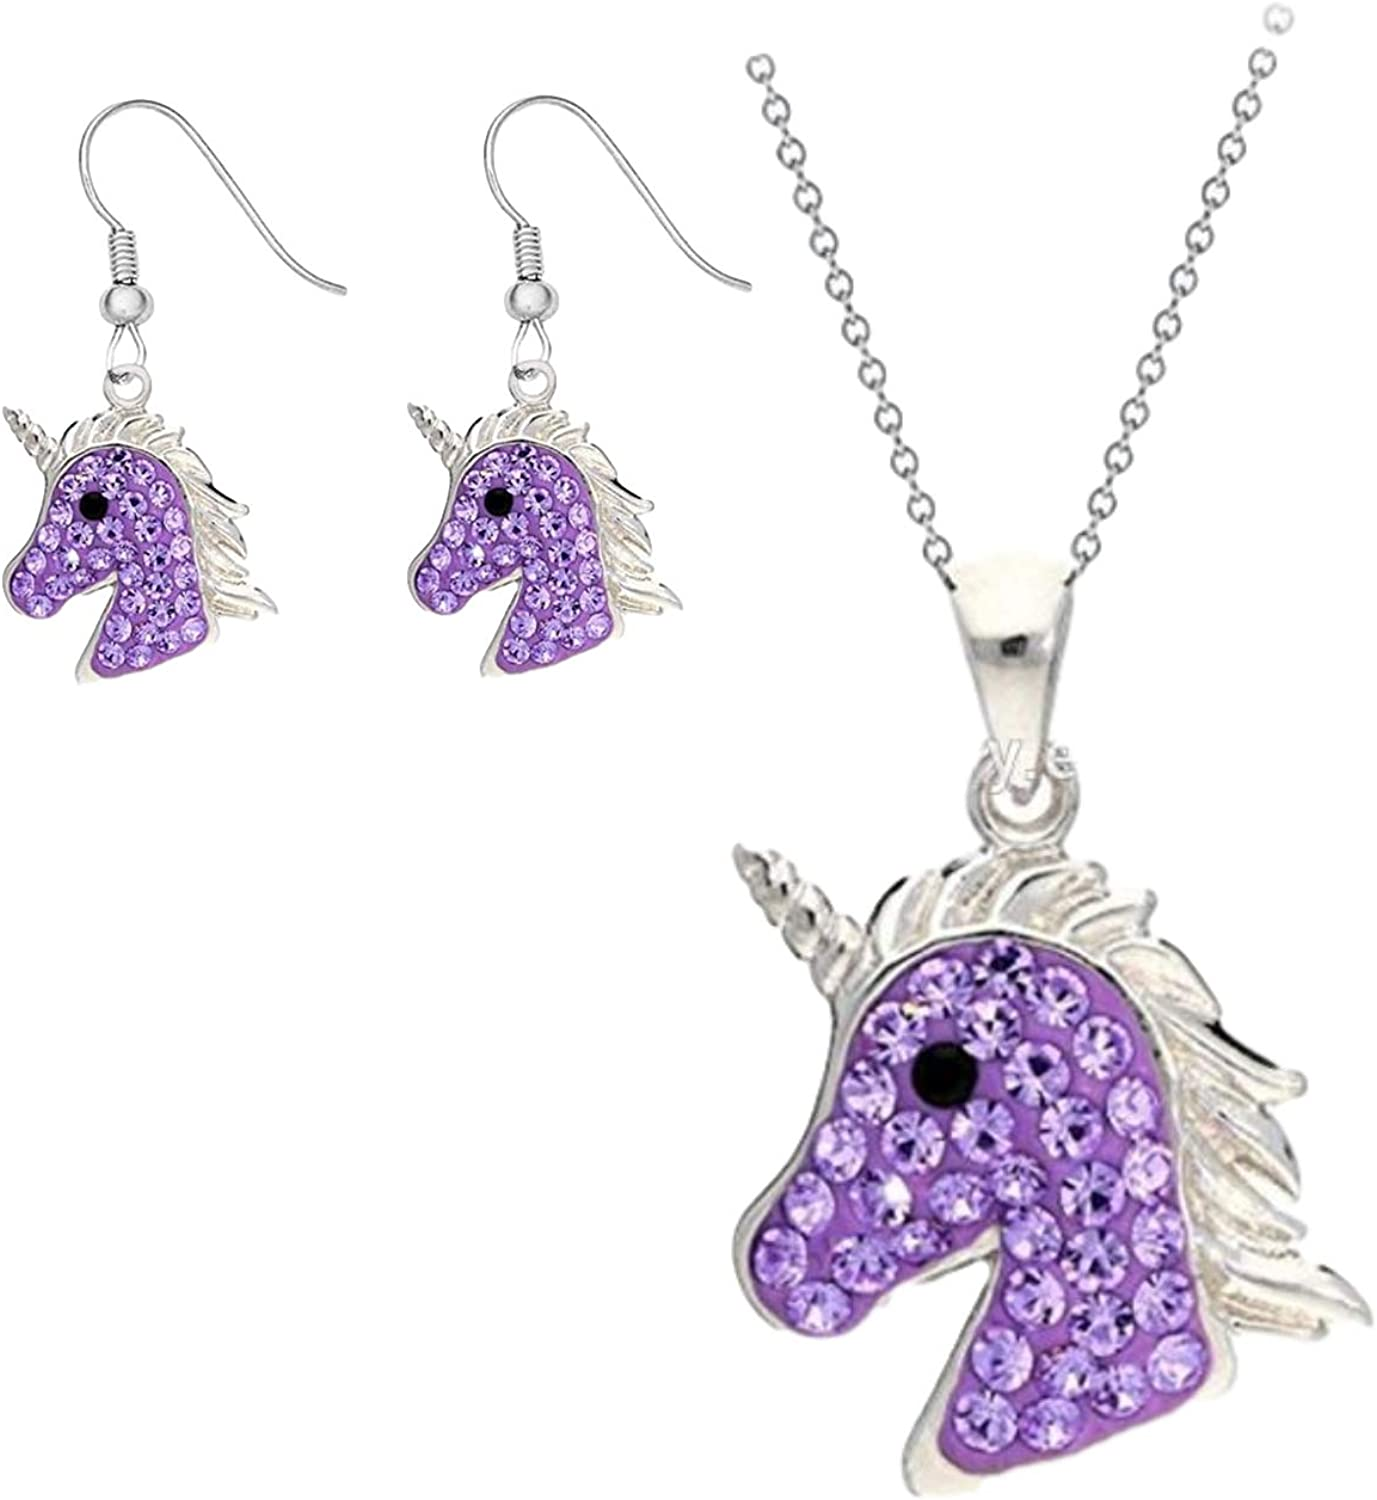 Magical Unicorn Zinc Alloy Fixed price for Selling sale Necklace Set Hypoallergeni Earrings